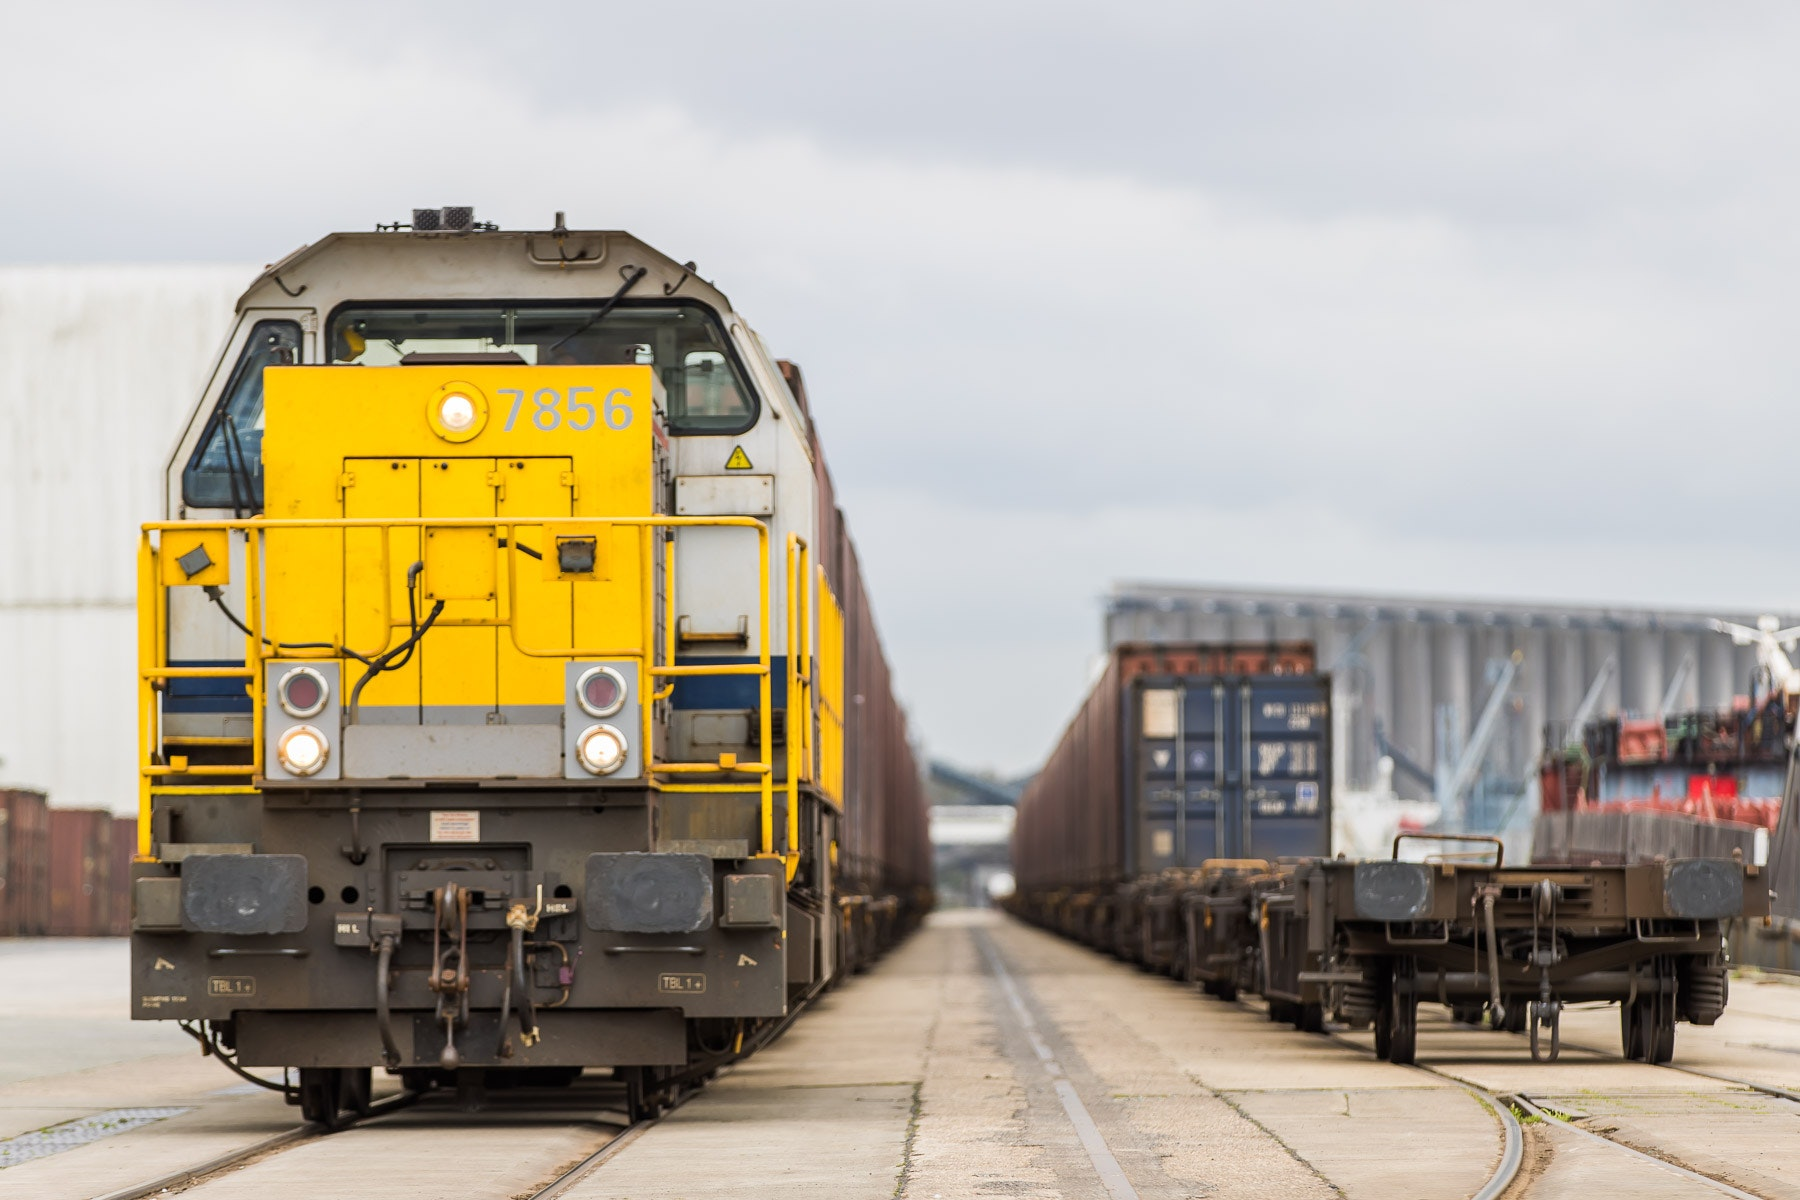 Lineas freight force, trains stationed at railway